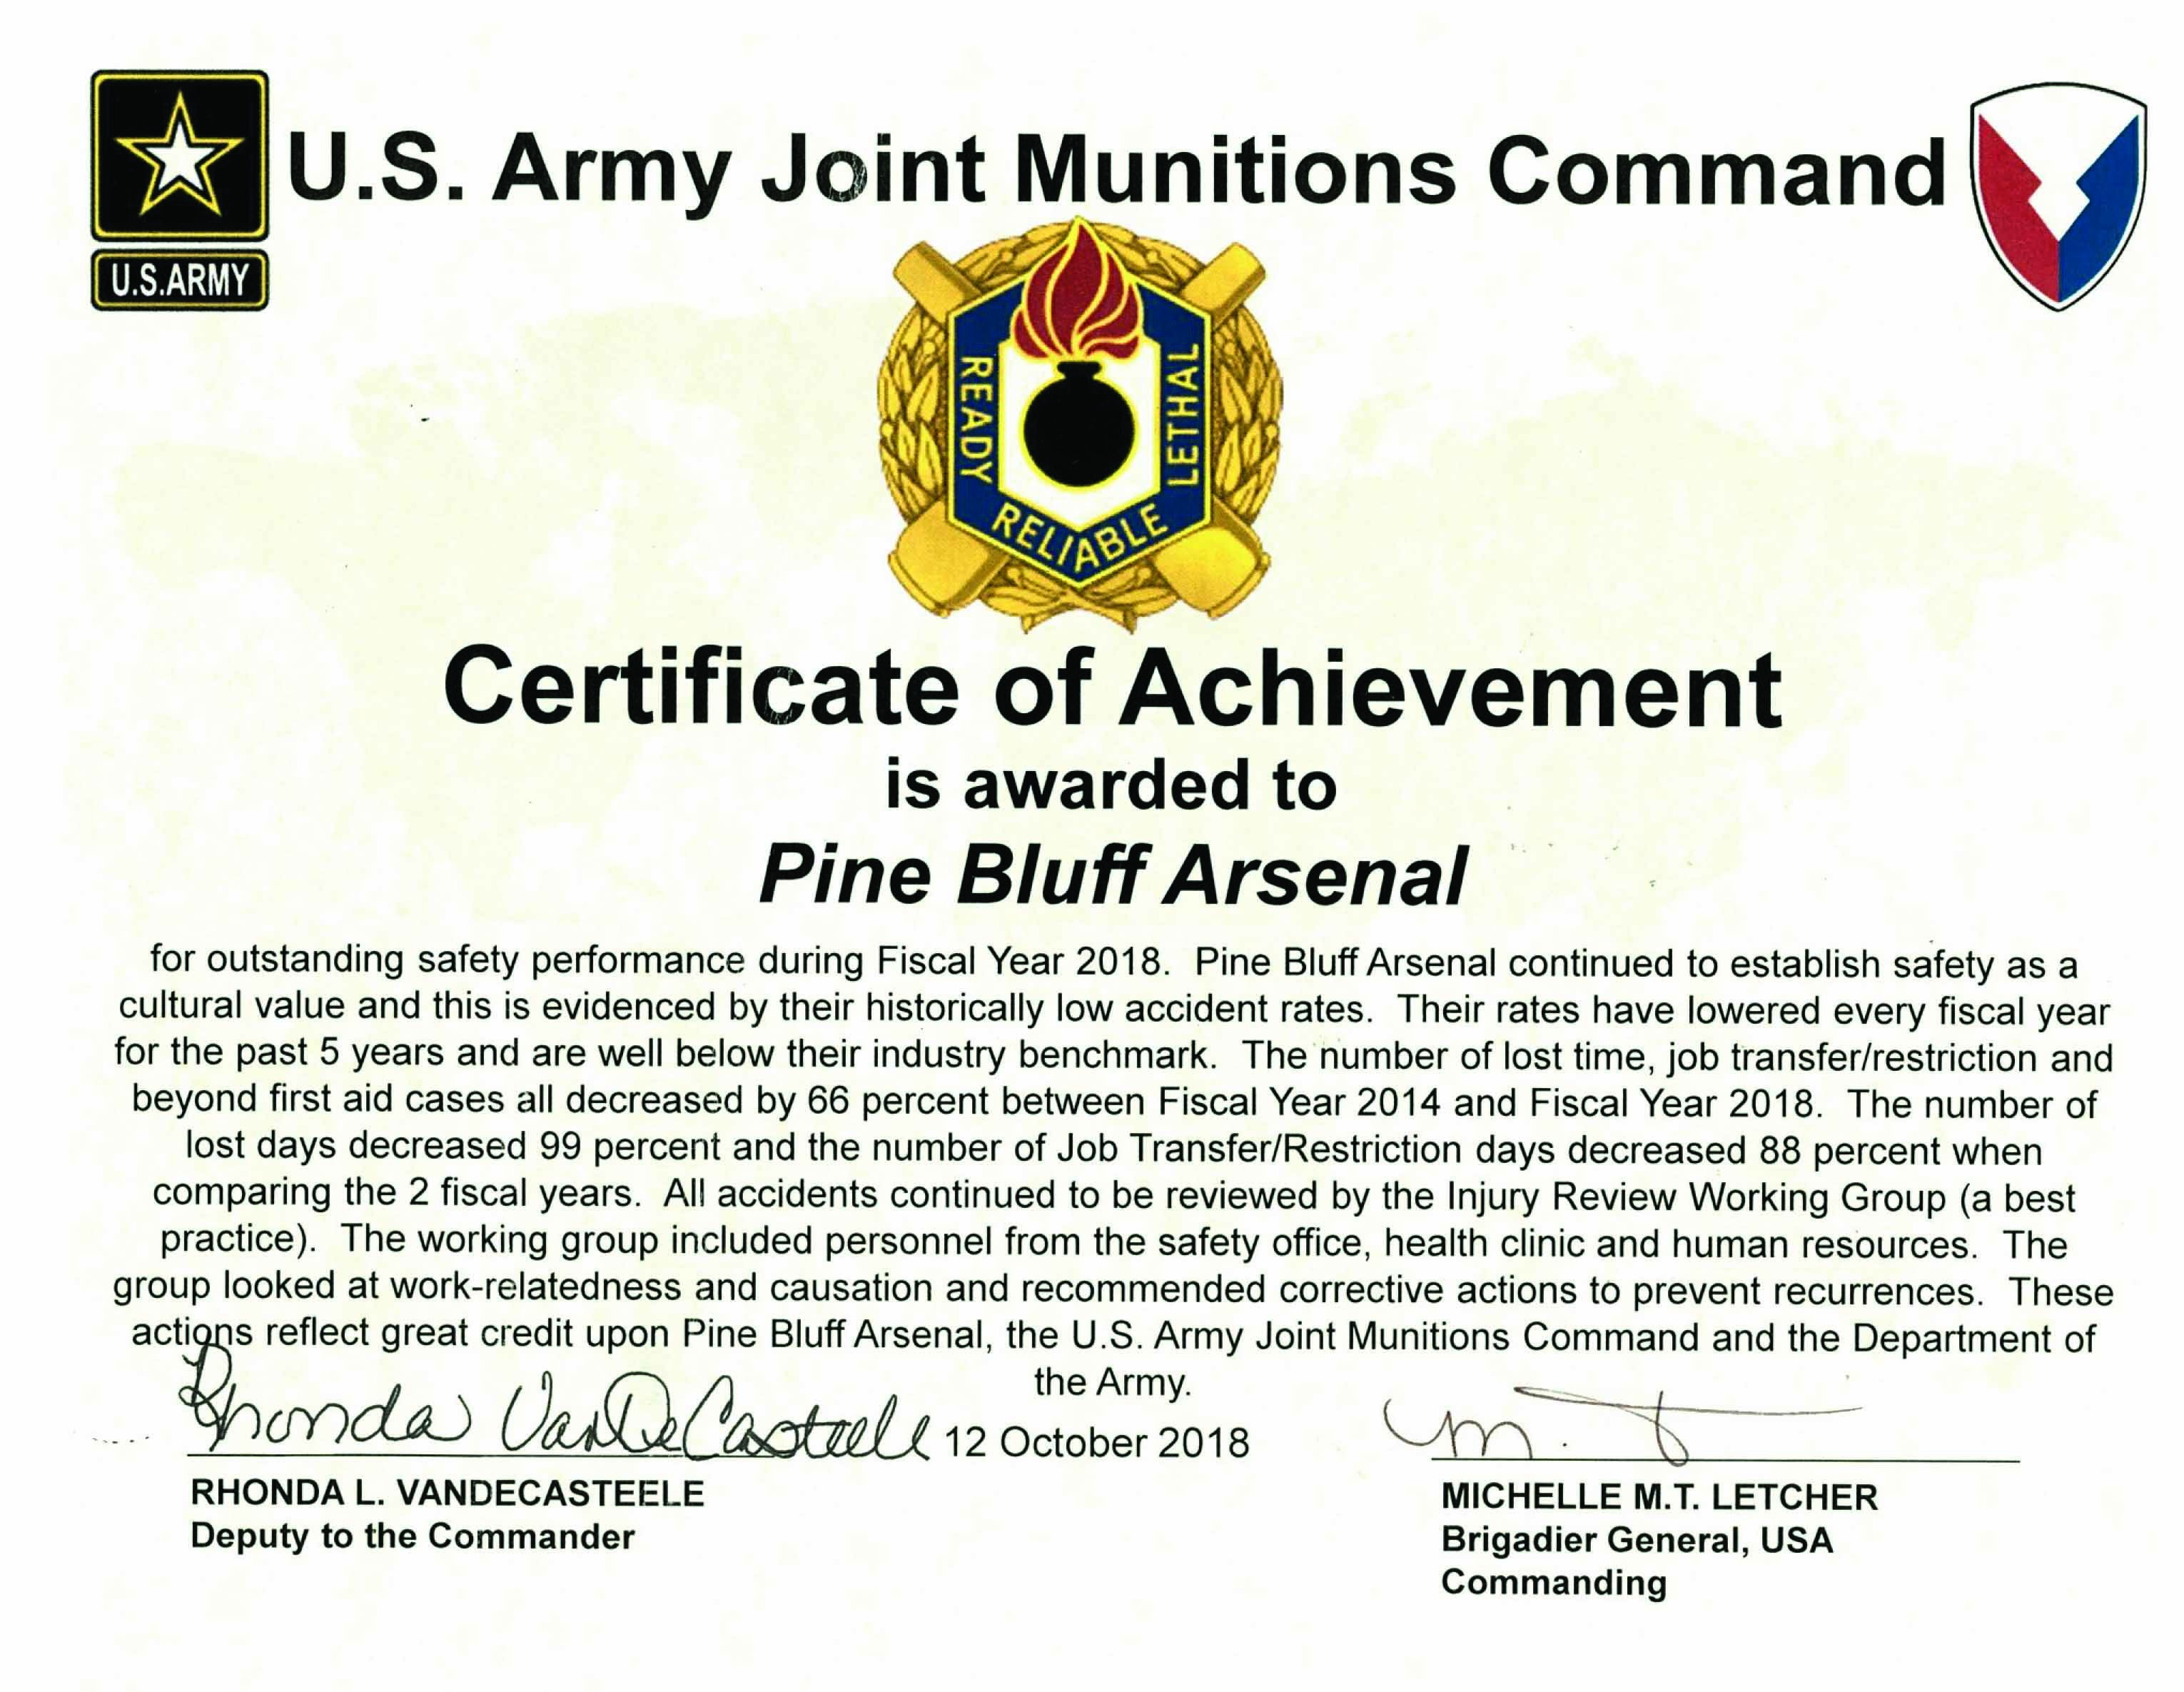 Arsenal Earns Top Jmc Safety Award Article The United States Army